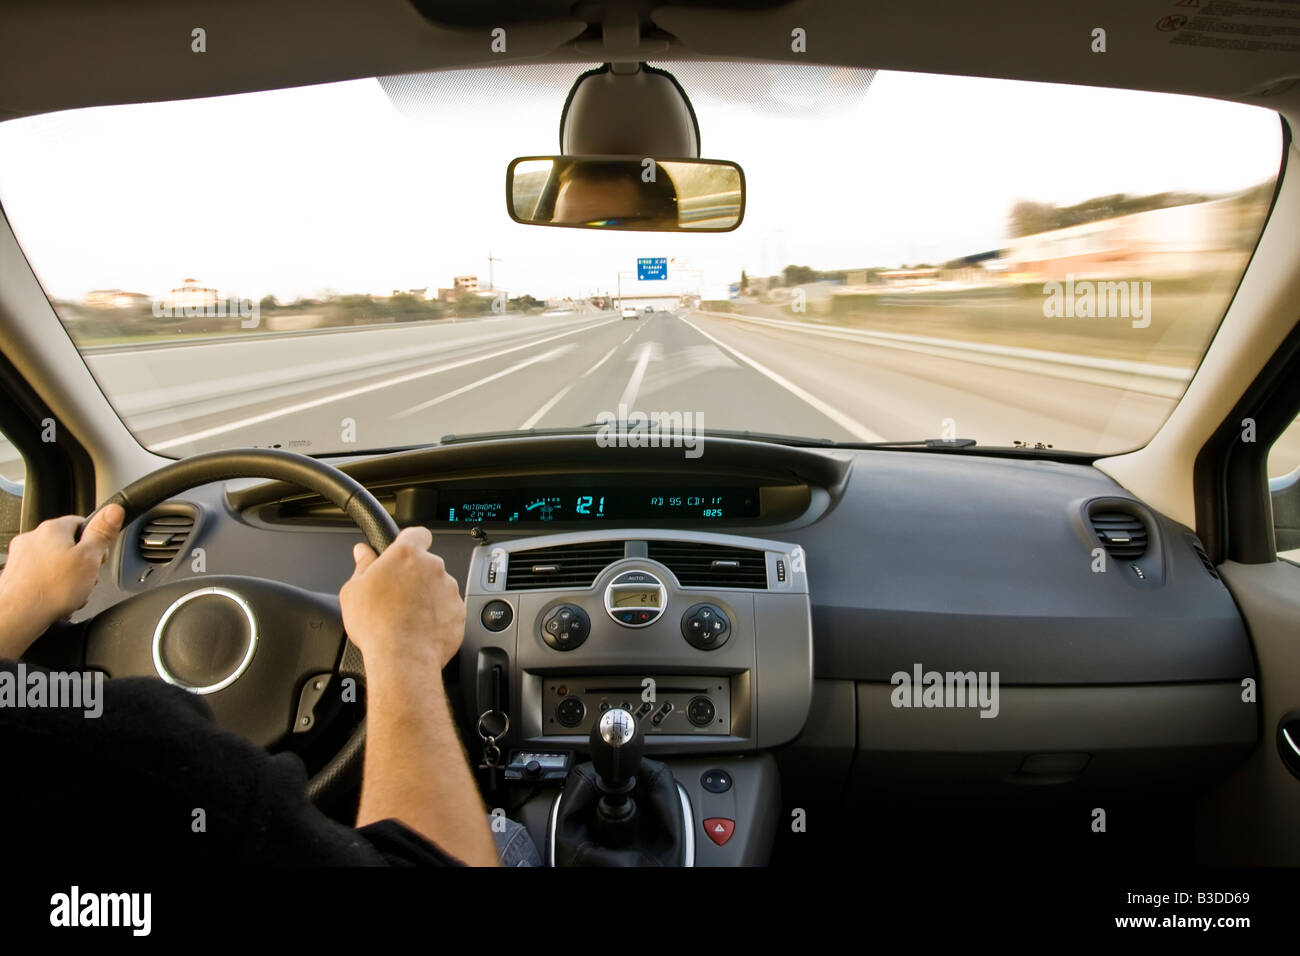 inside car view high speed stock photos inside car view high speed stock images alamy. Black Bedroom Furniture Sets. Home Design Ideas